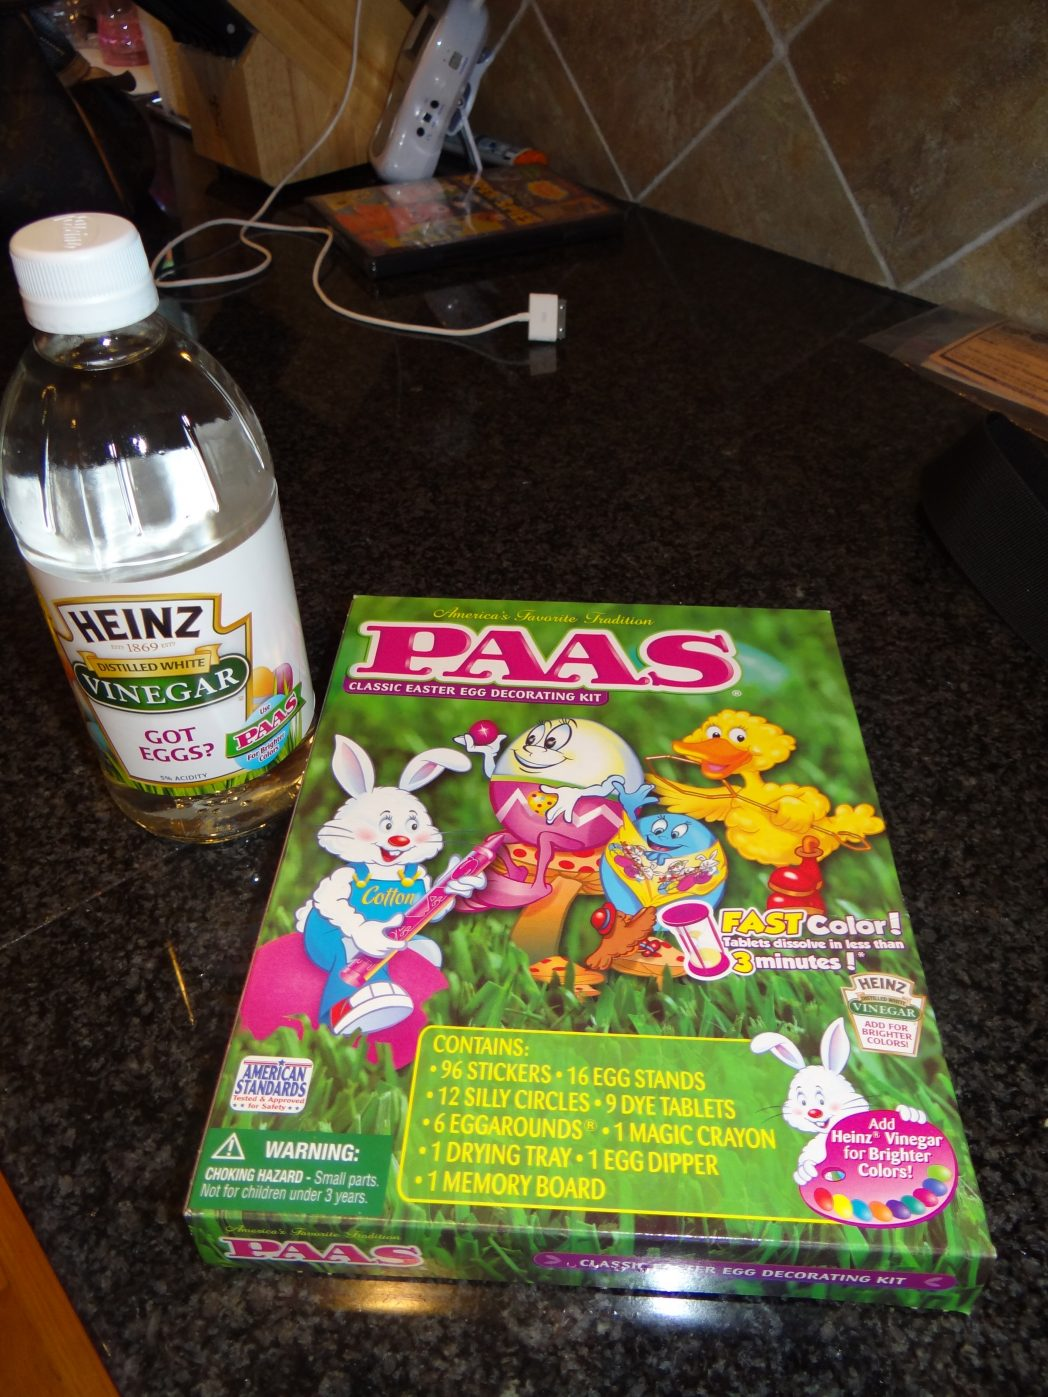 Getting Easter Ready with Heinz and PAAS Easter Egg Dying!